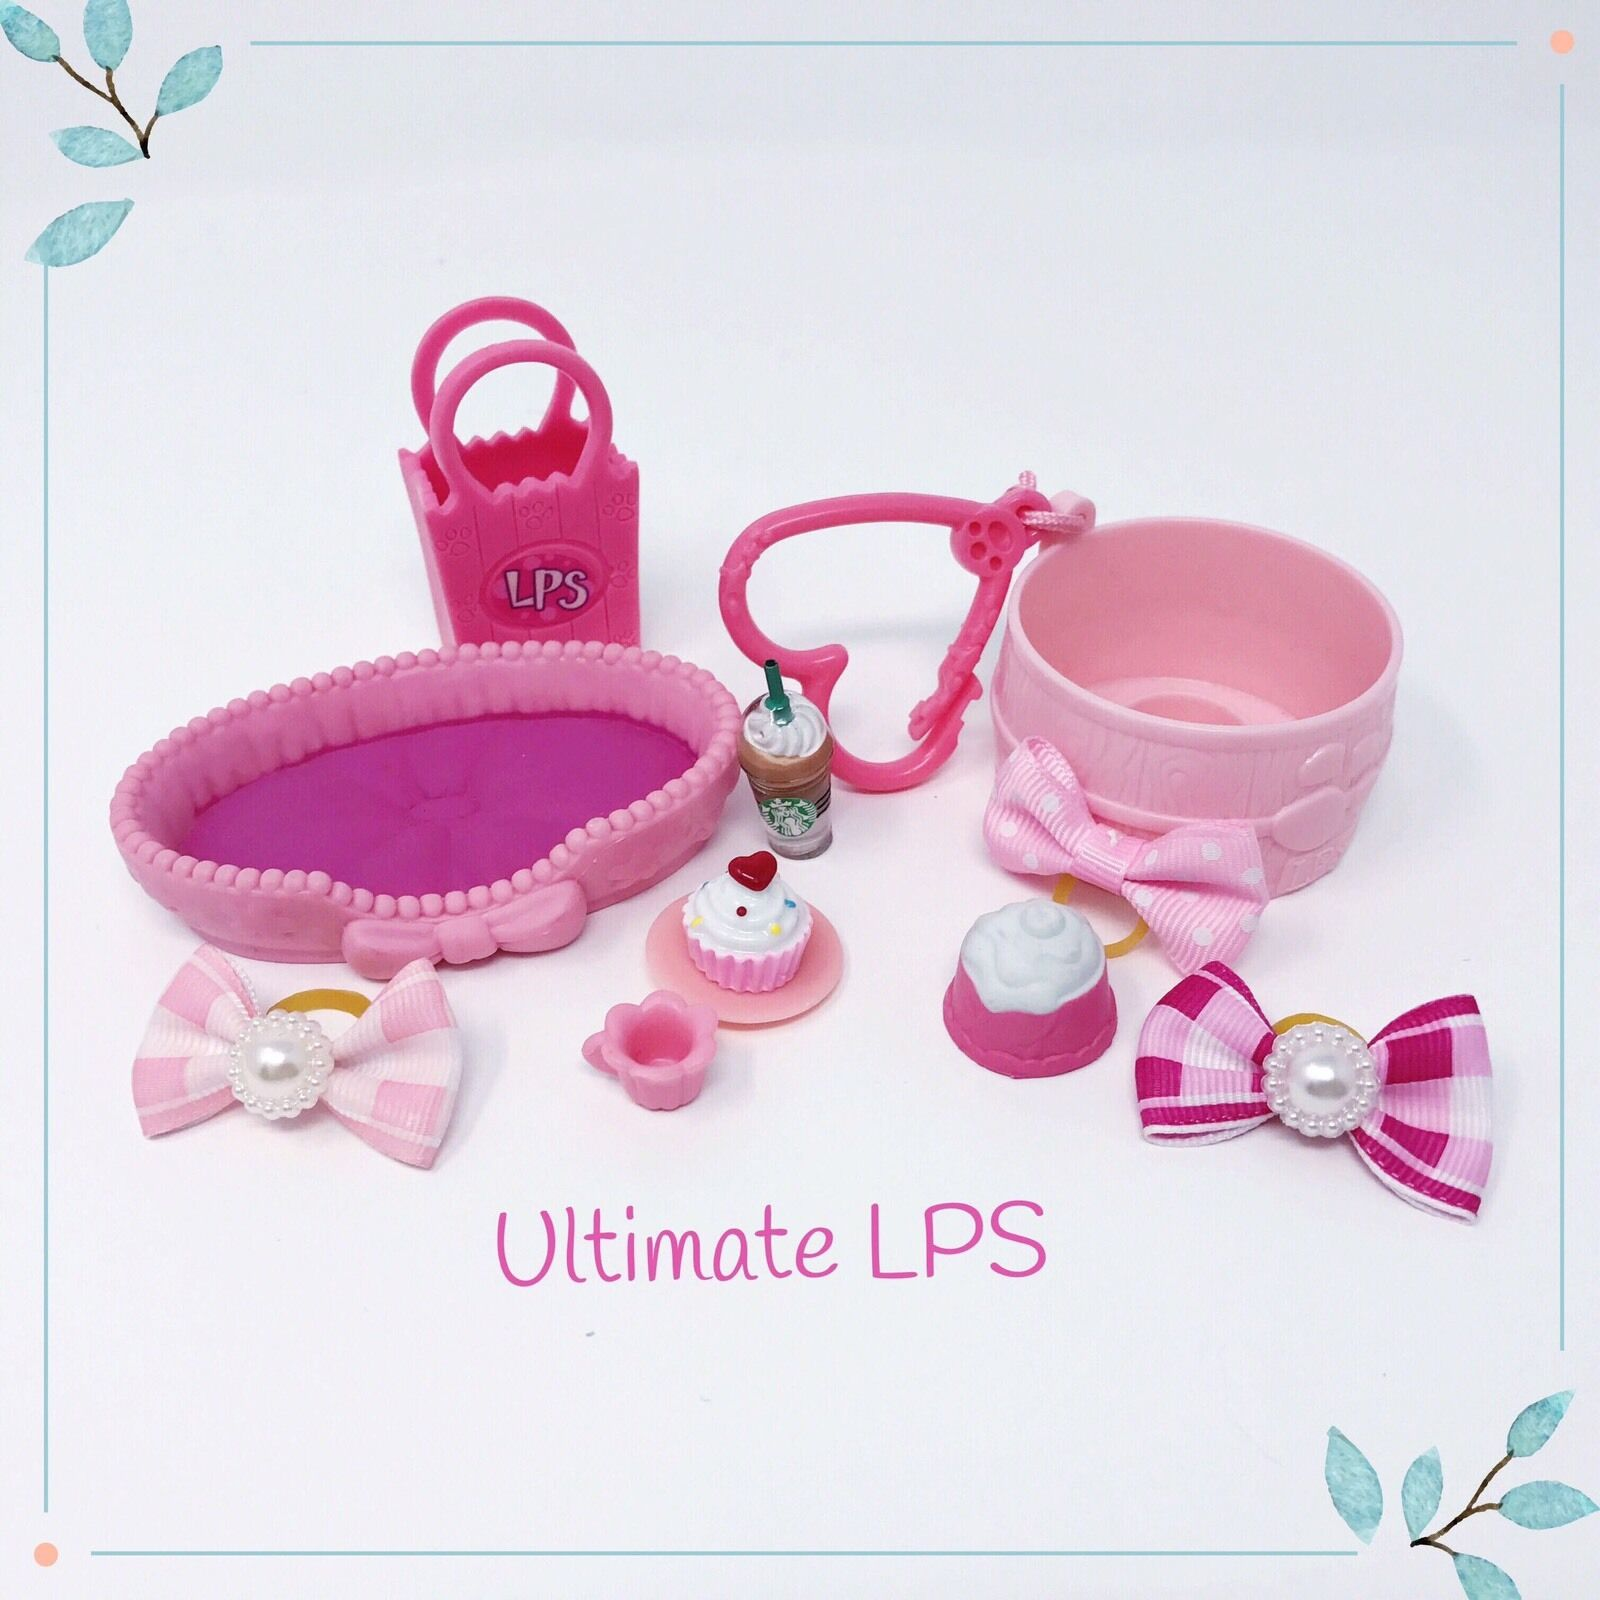 Buy low price, high quality pink cat accessories with worldwide shipping on teraisompcz8d.ga